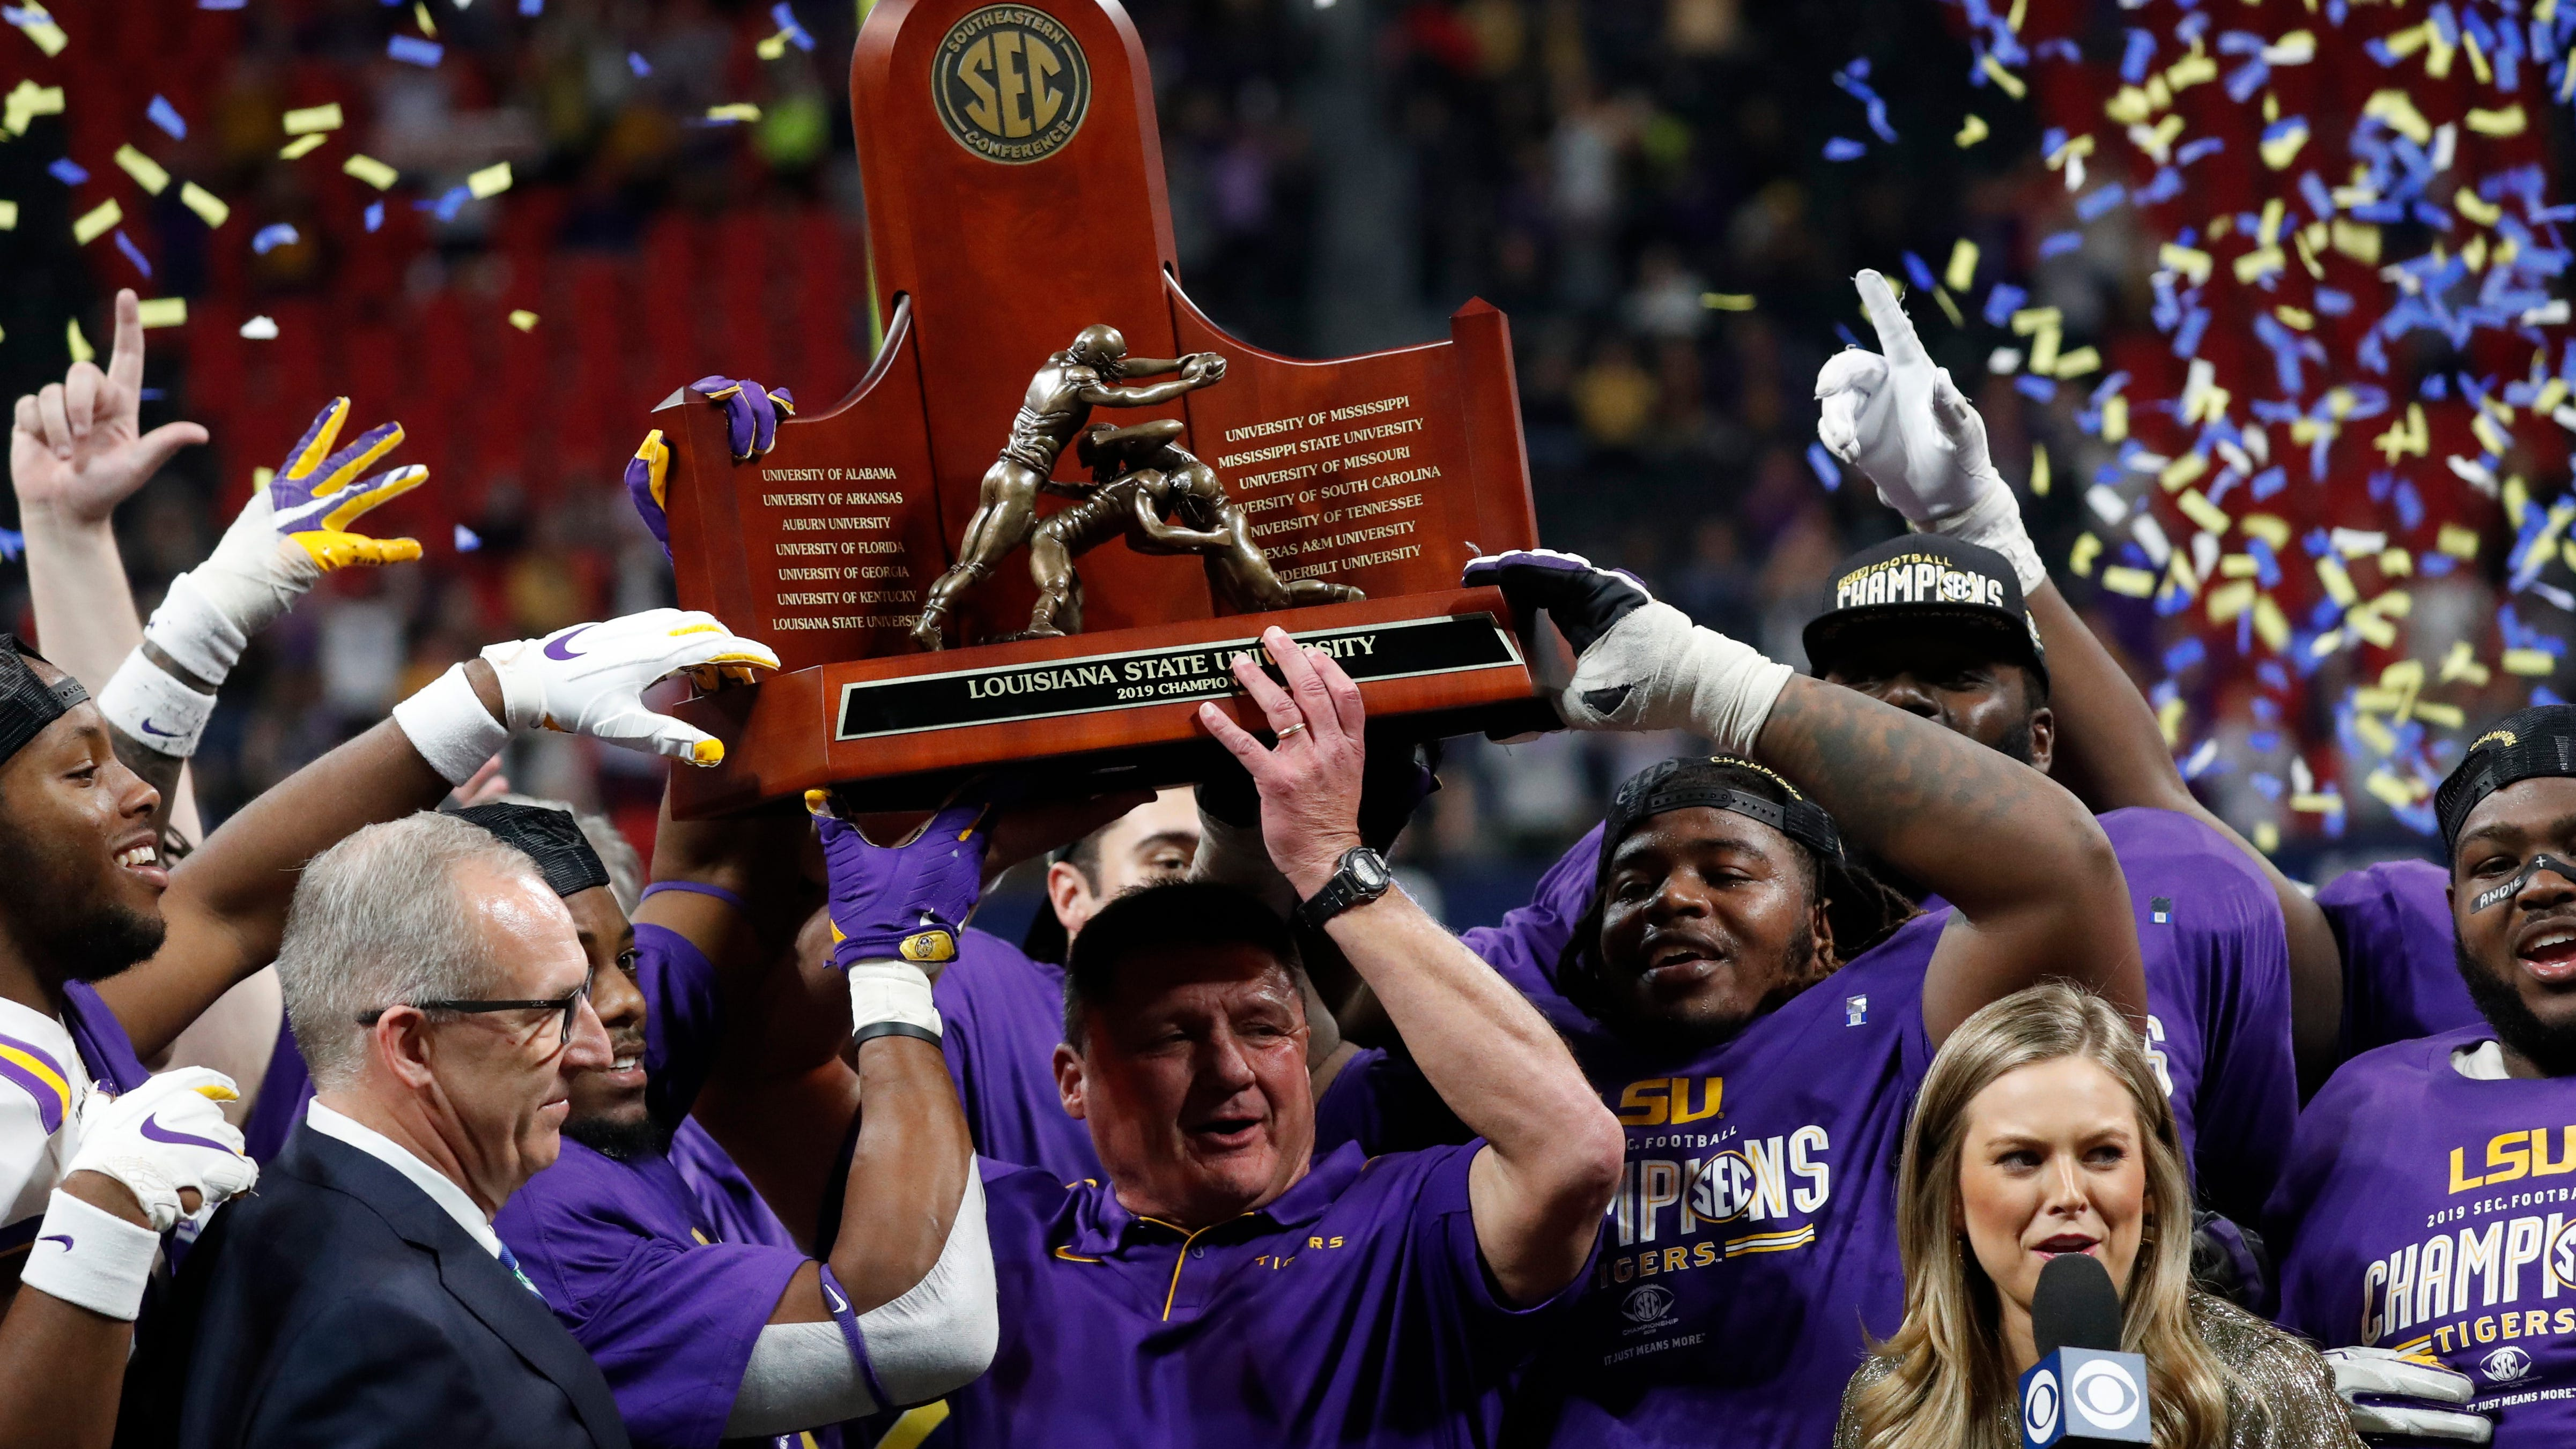 Next! SEC champion LSU in the clubhouse at 13-0